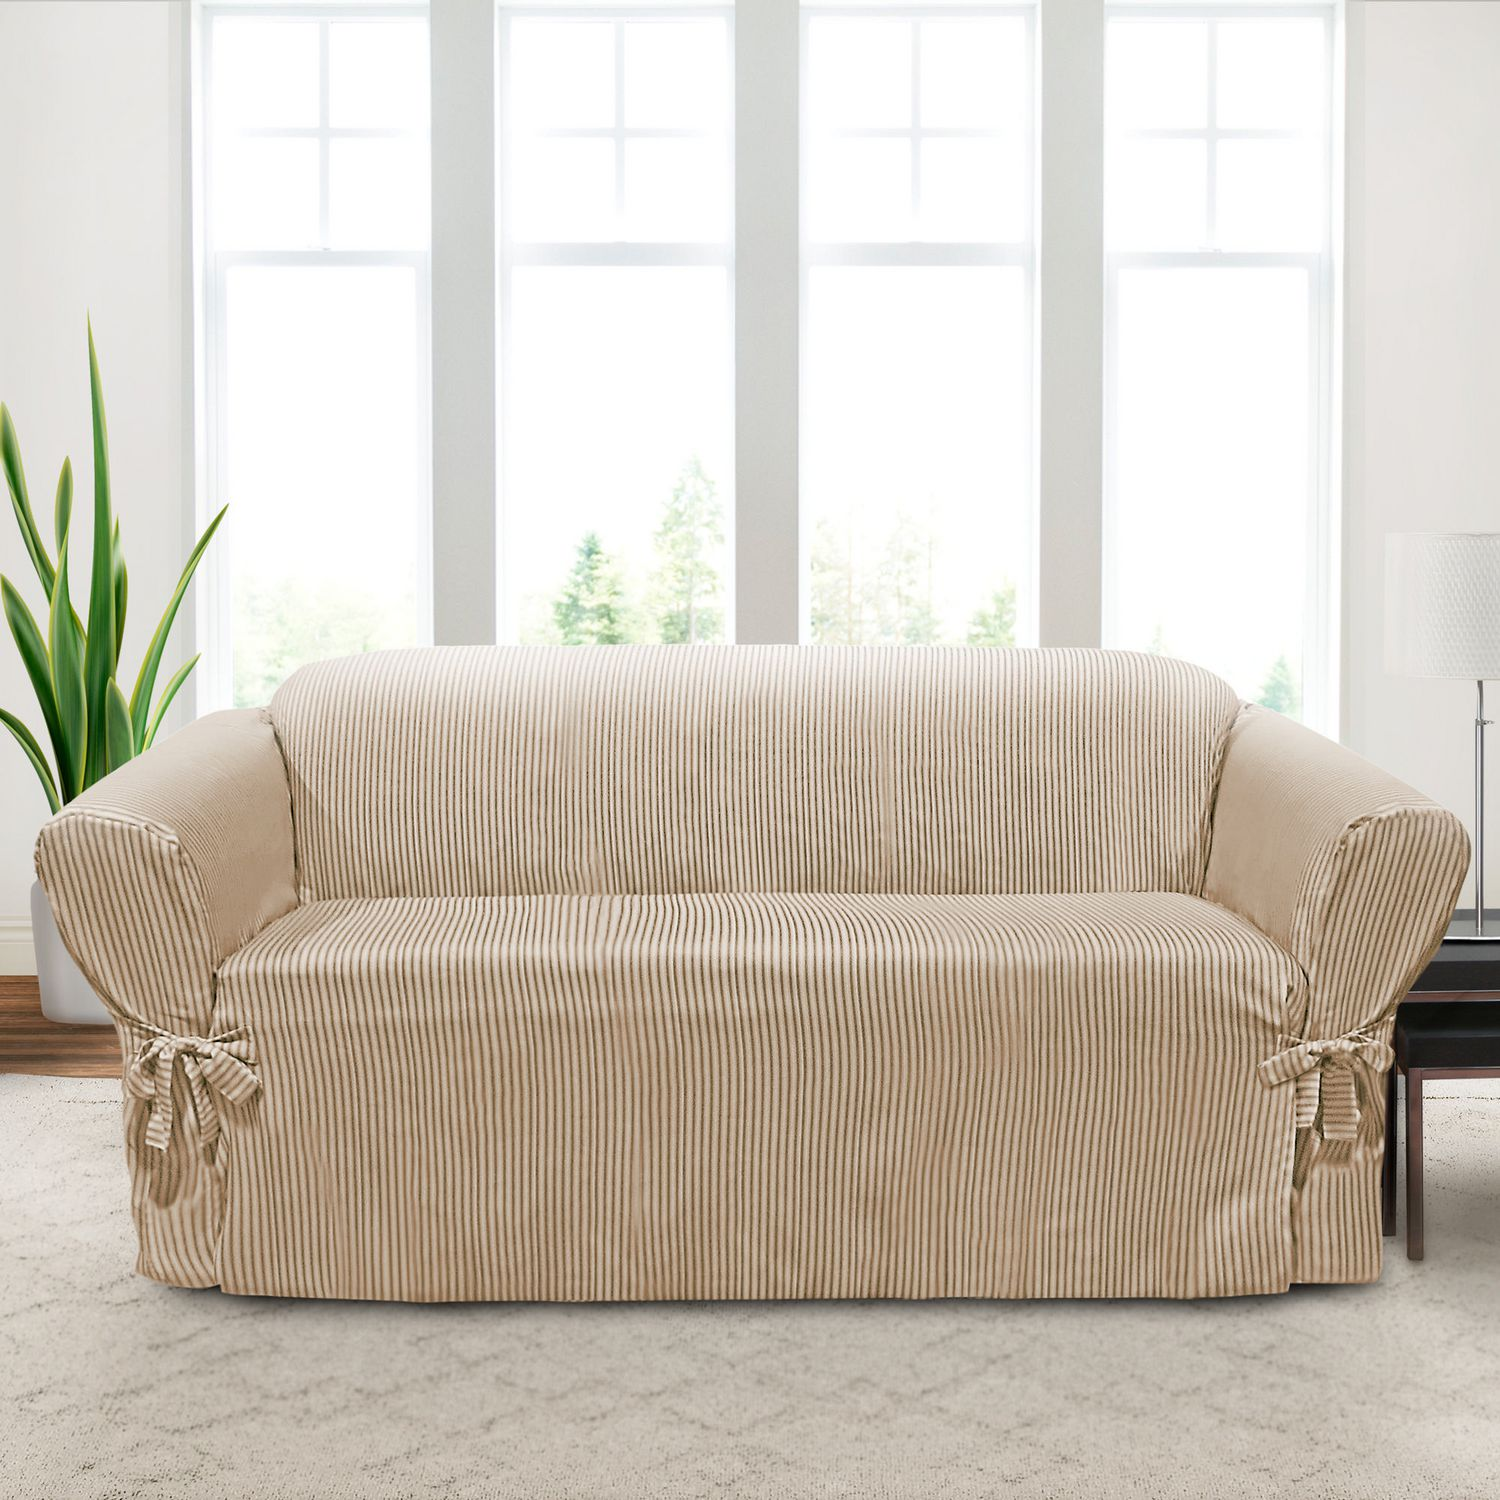 Sure Fit Muskoka Stripe Relaxed Fit Sofa Slipcover